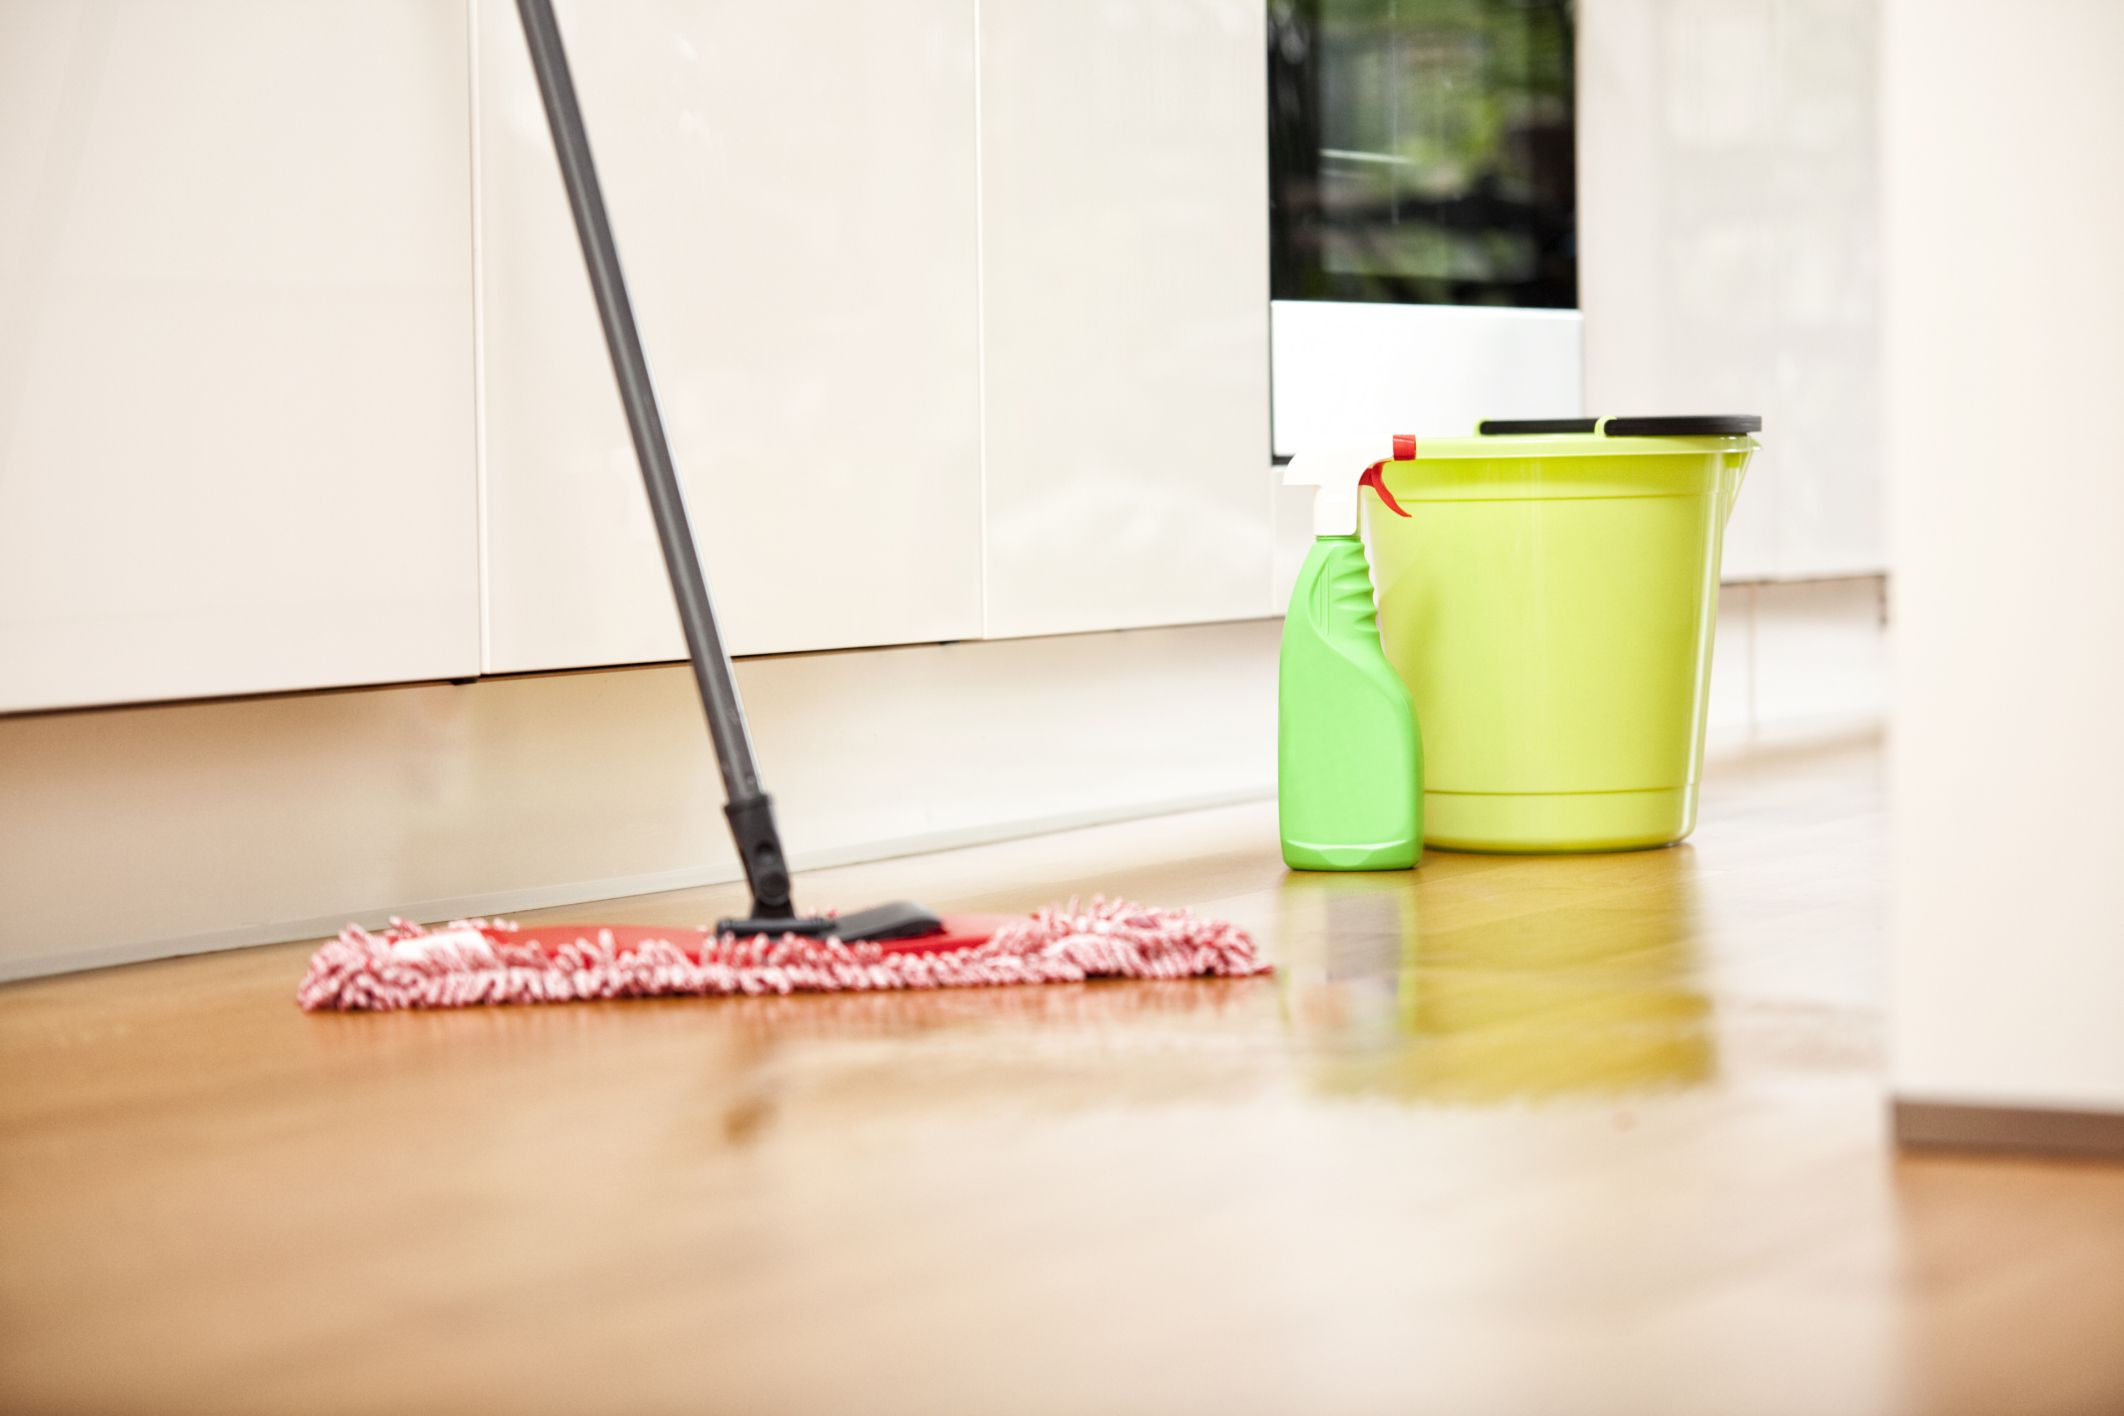 Floor Mopping Mop And Cleaning Products